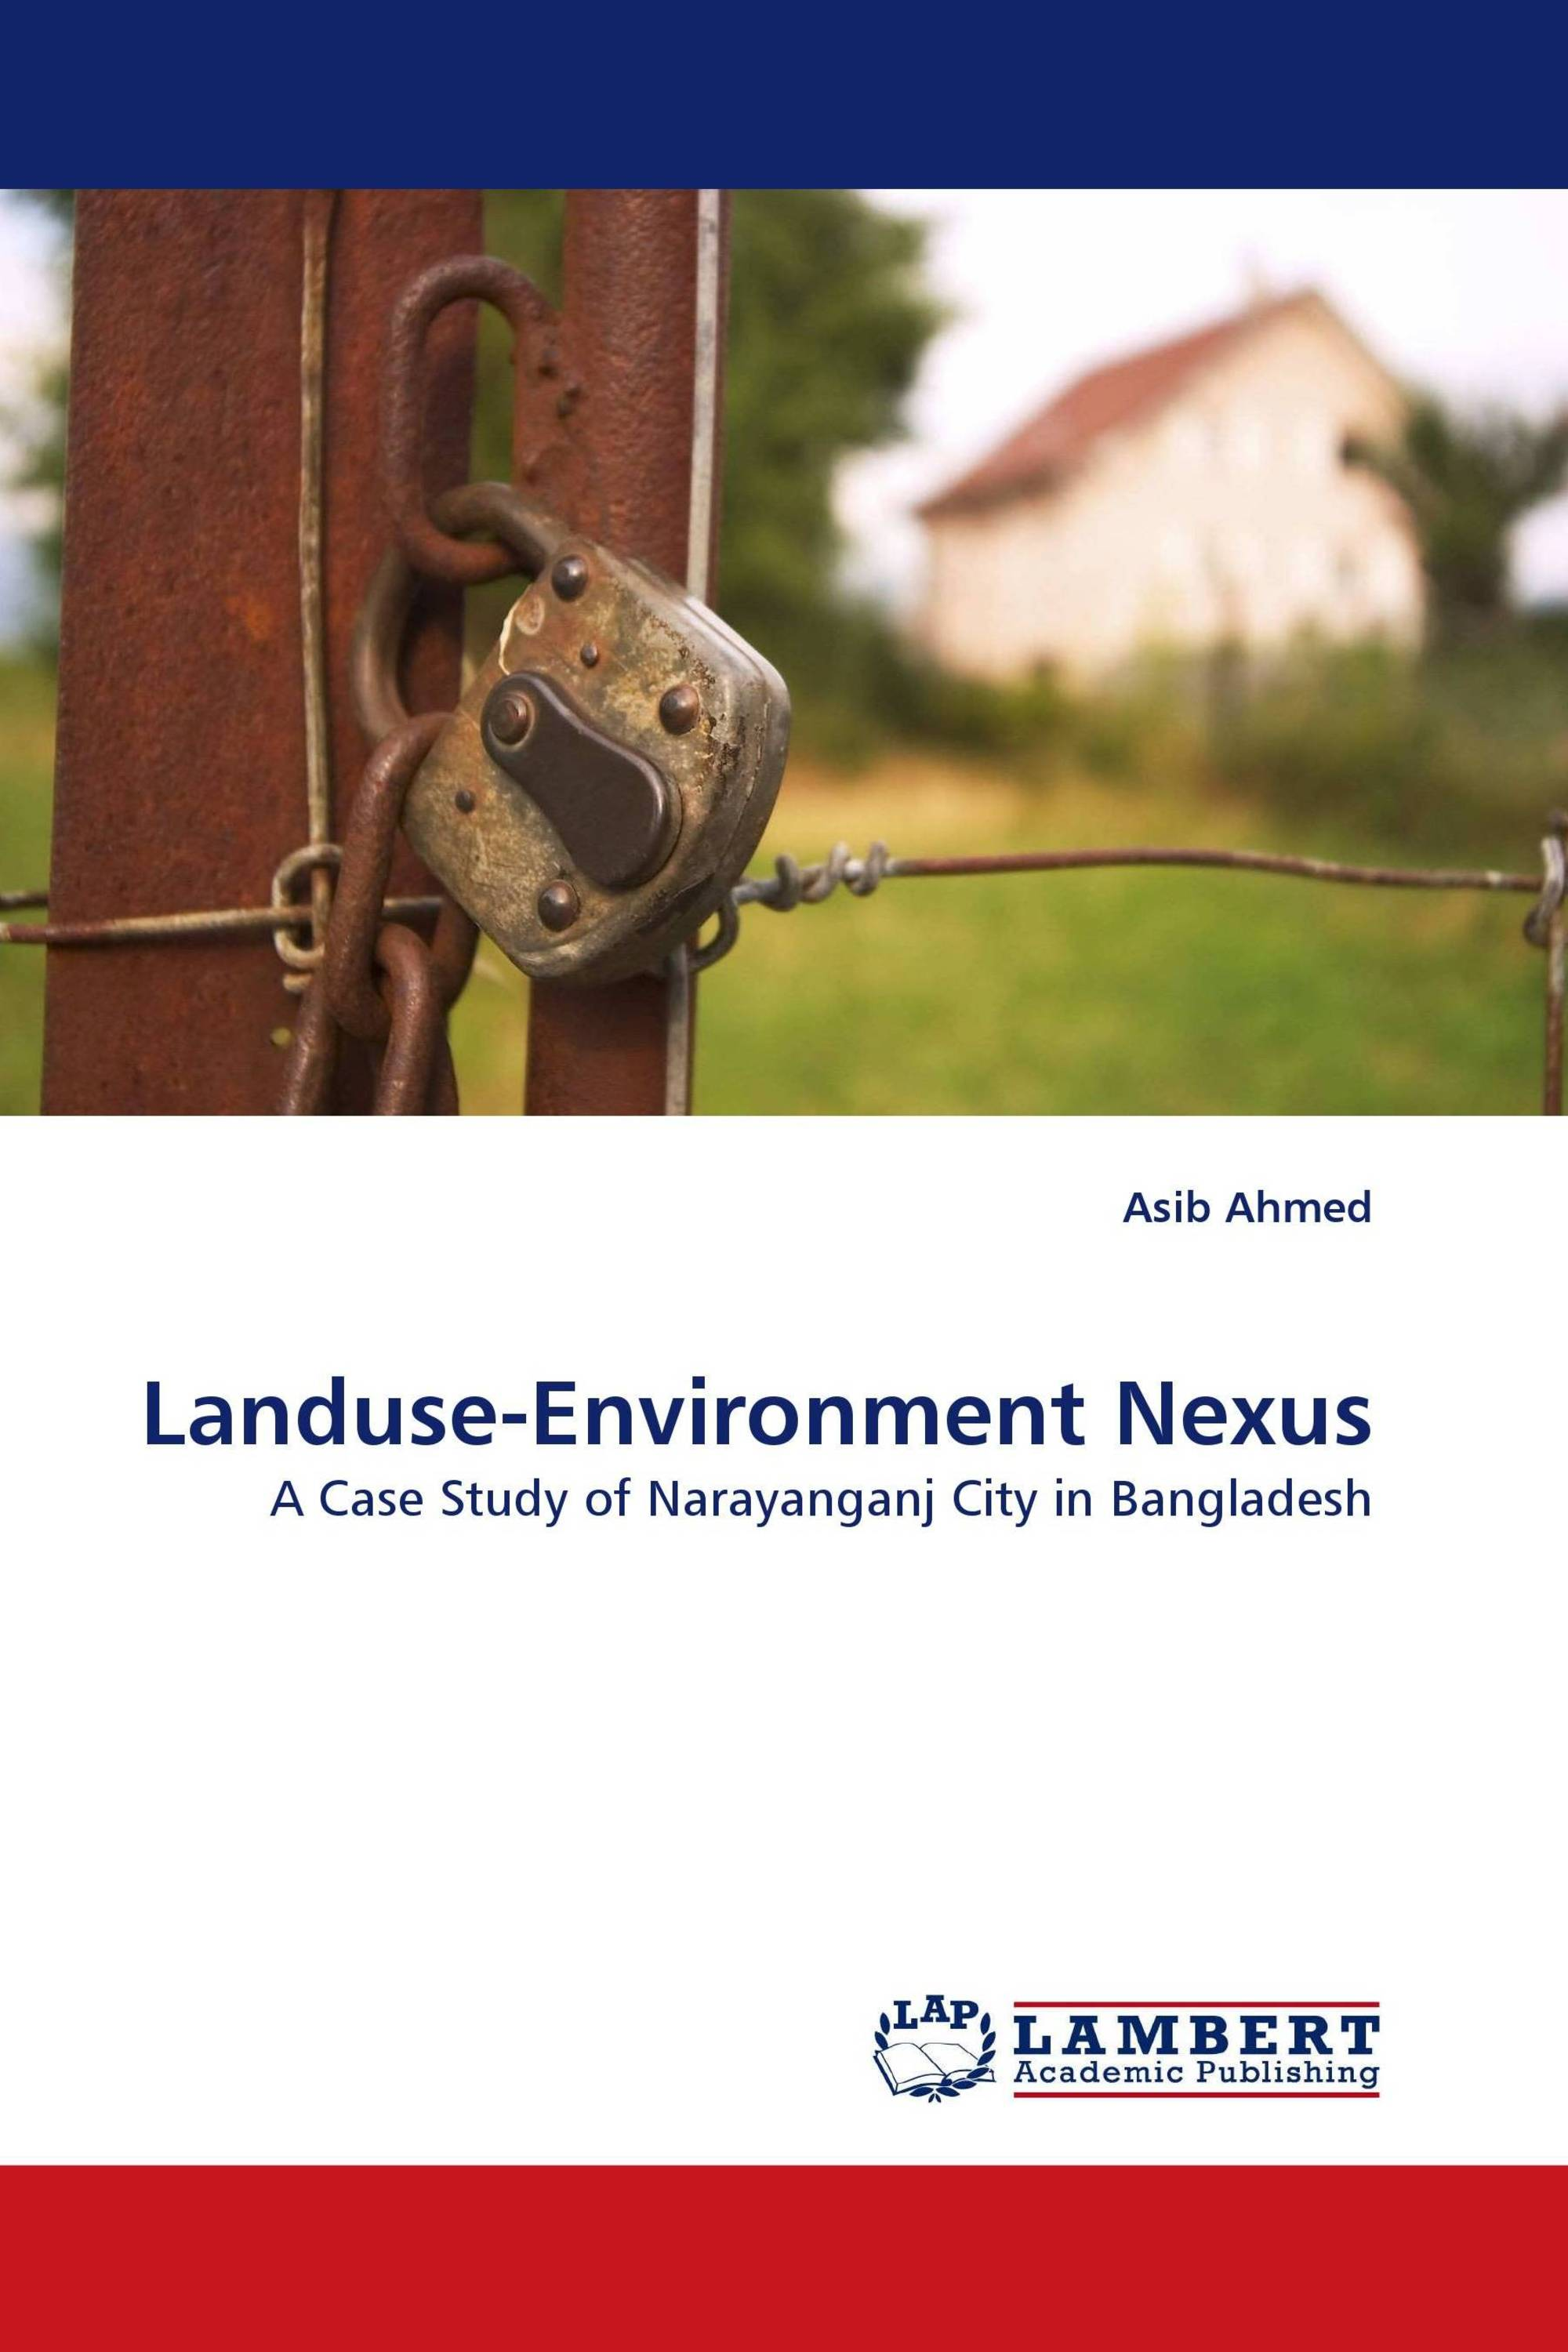 Landuse-Environment Nexus